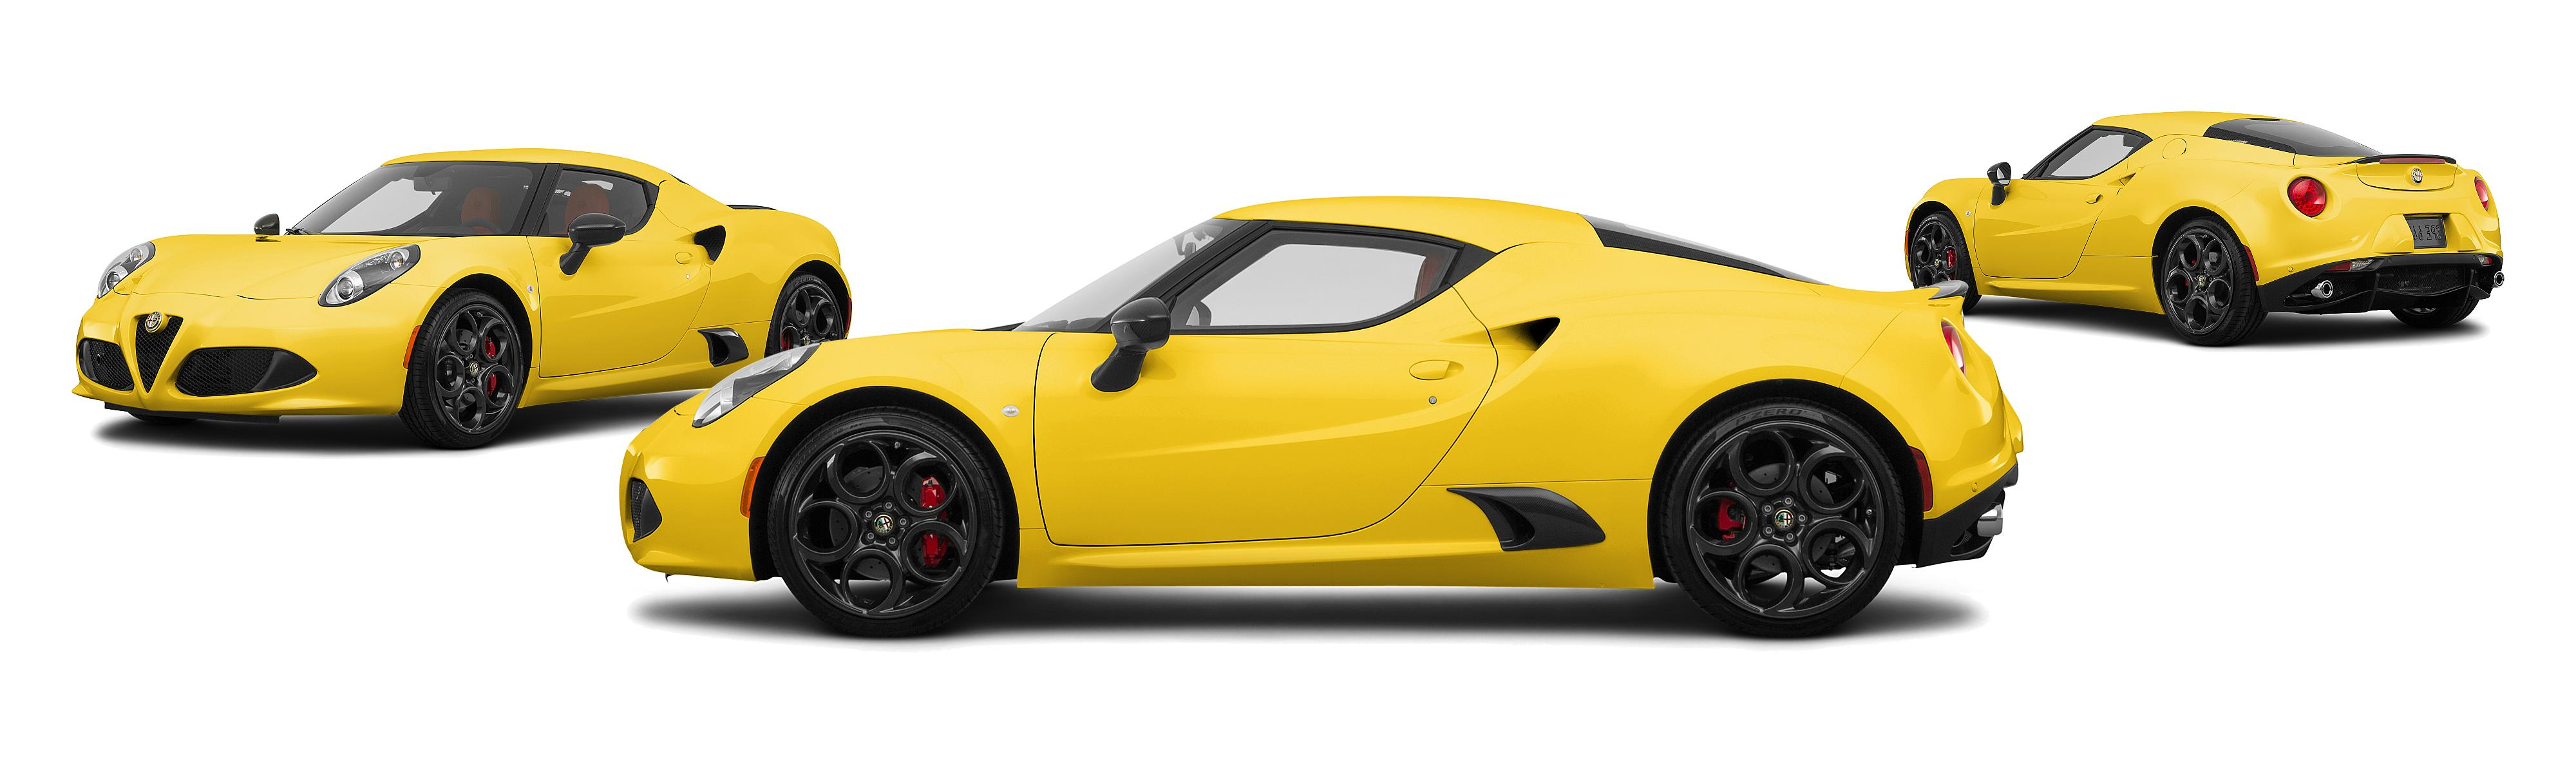 2017 Alfa Romeo 4c 2dr Coupe Research Groovecar